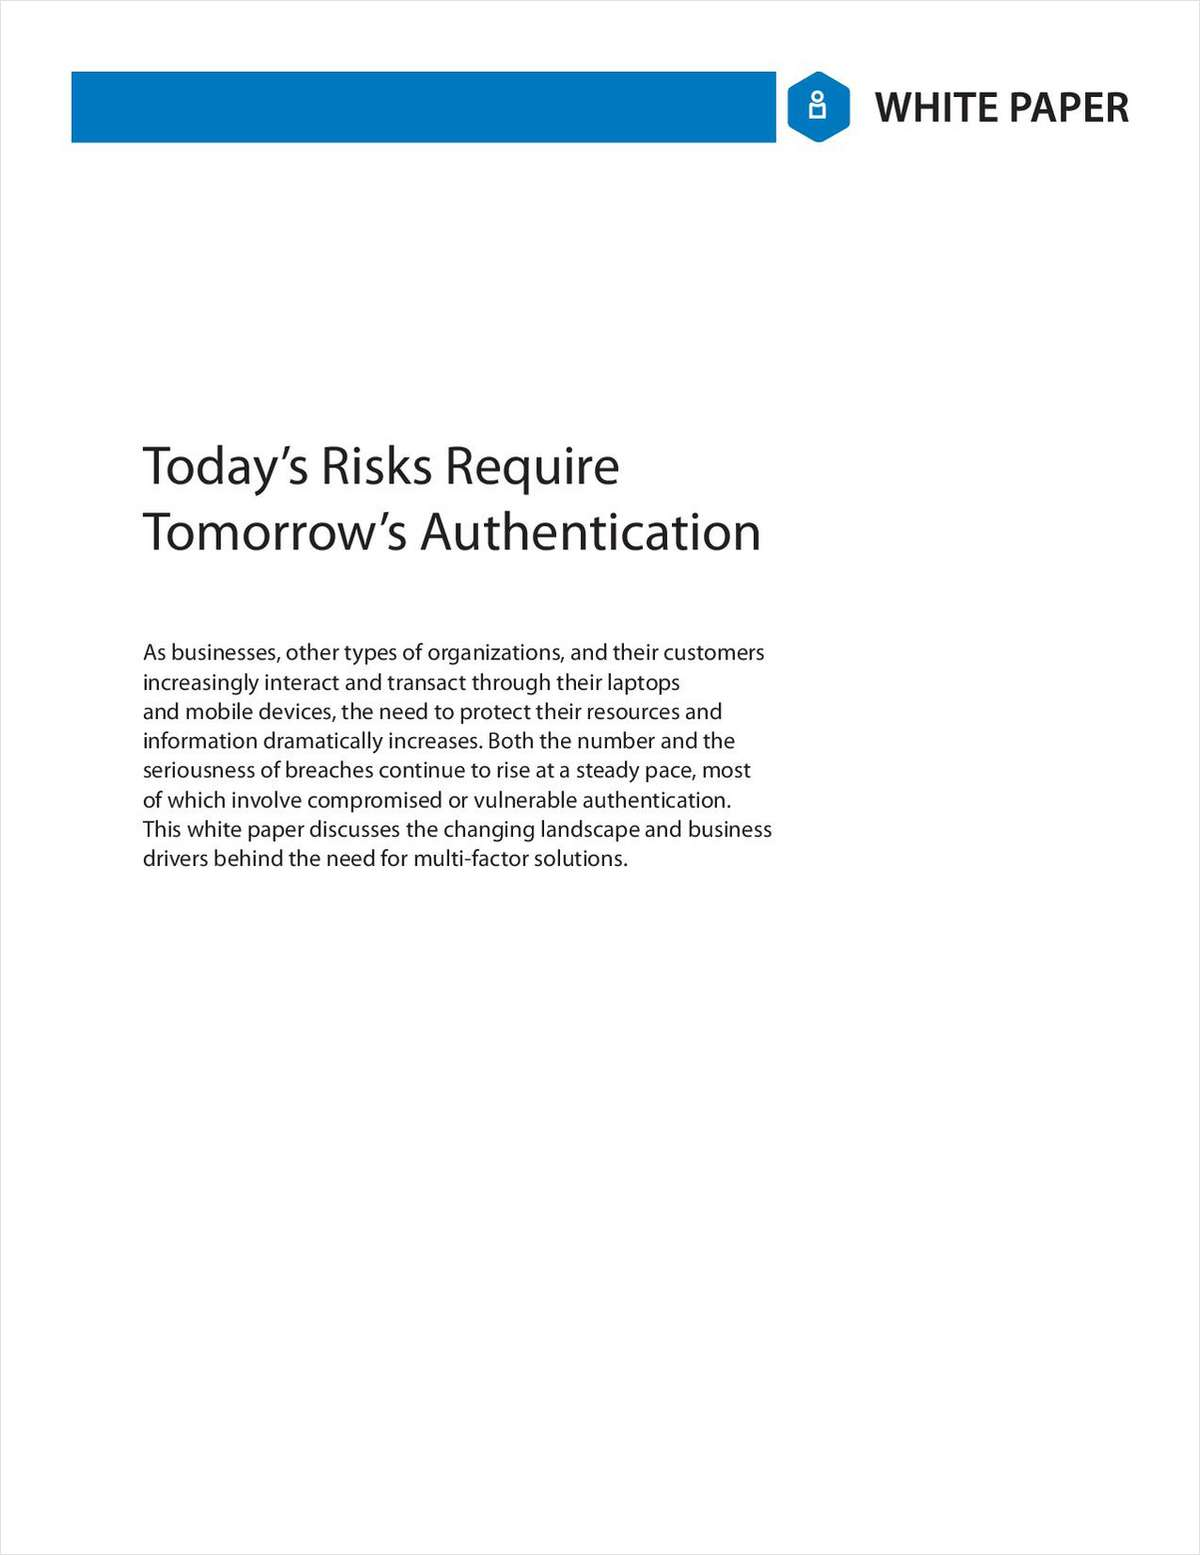 Looking Forward: Today's Risks Require Tomorrow's Authentication